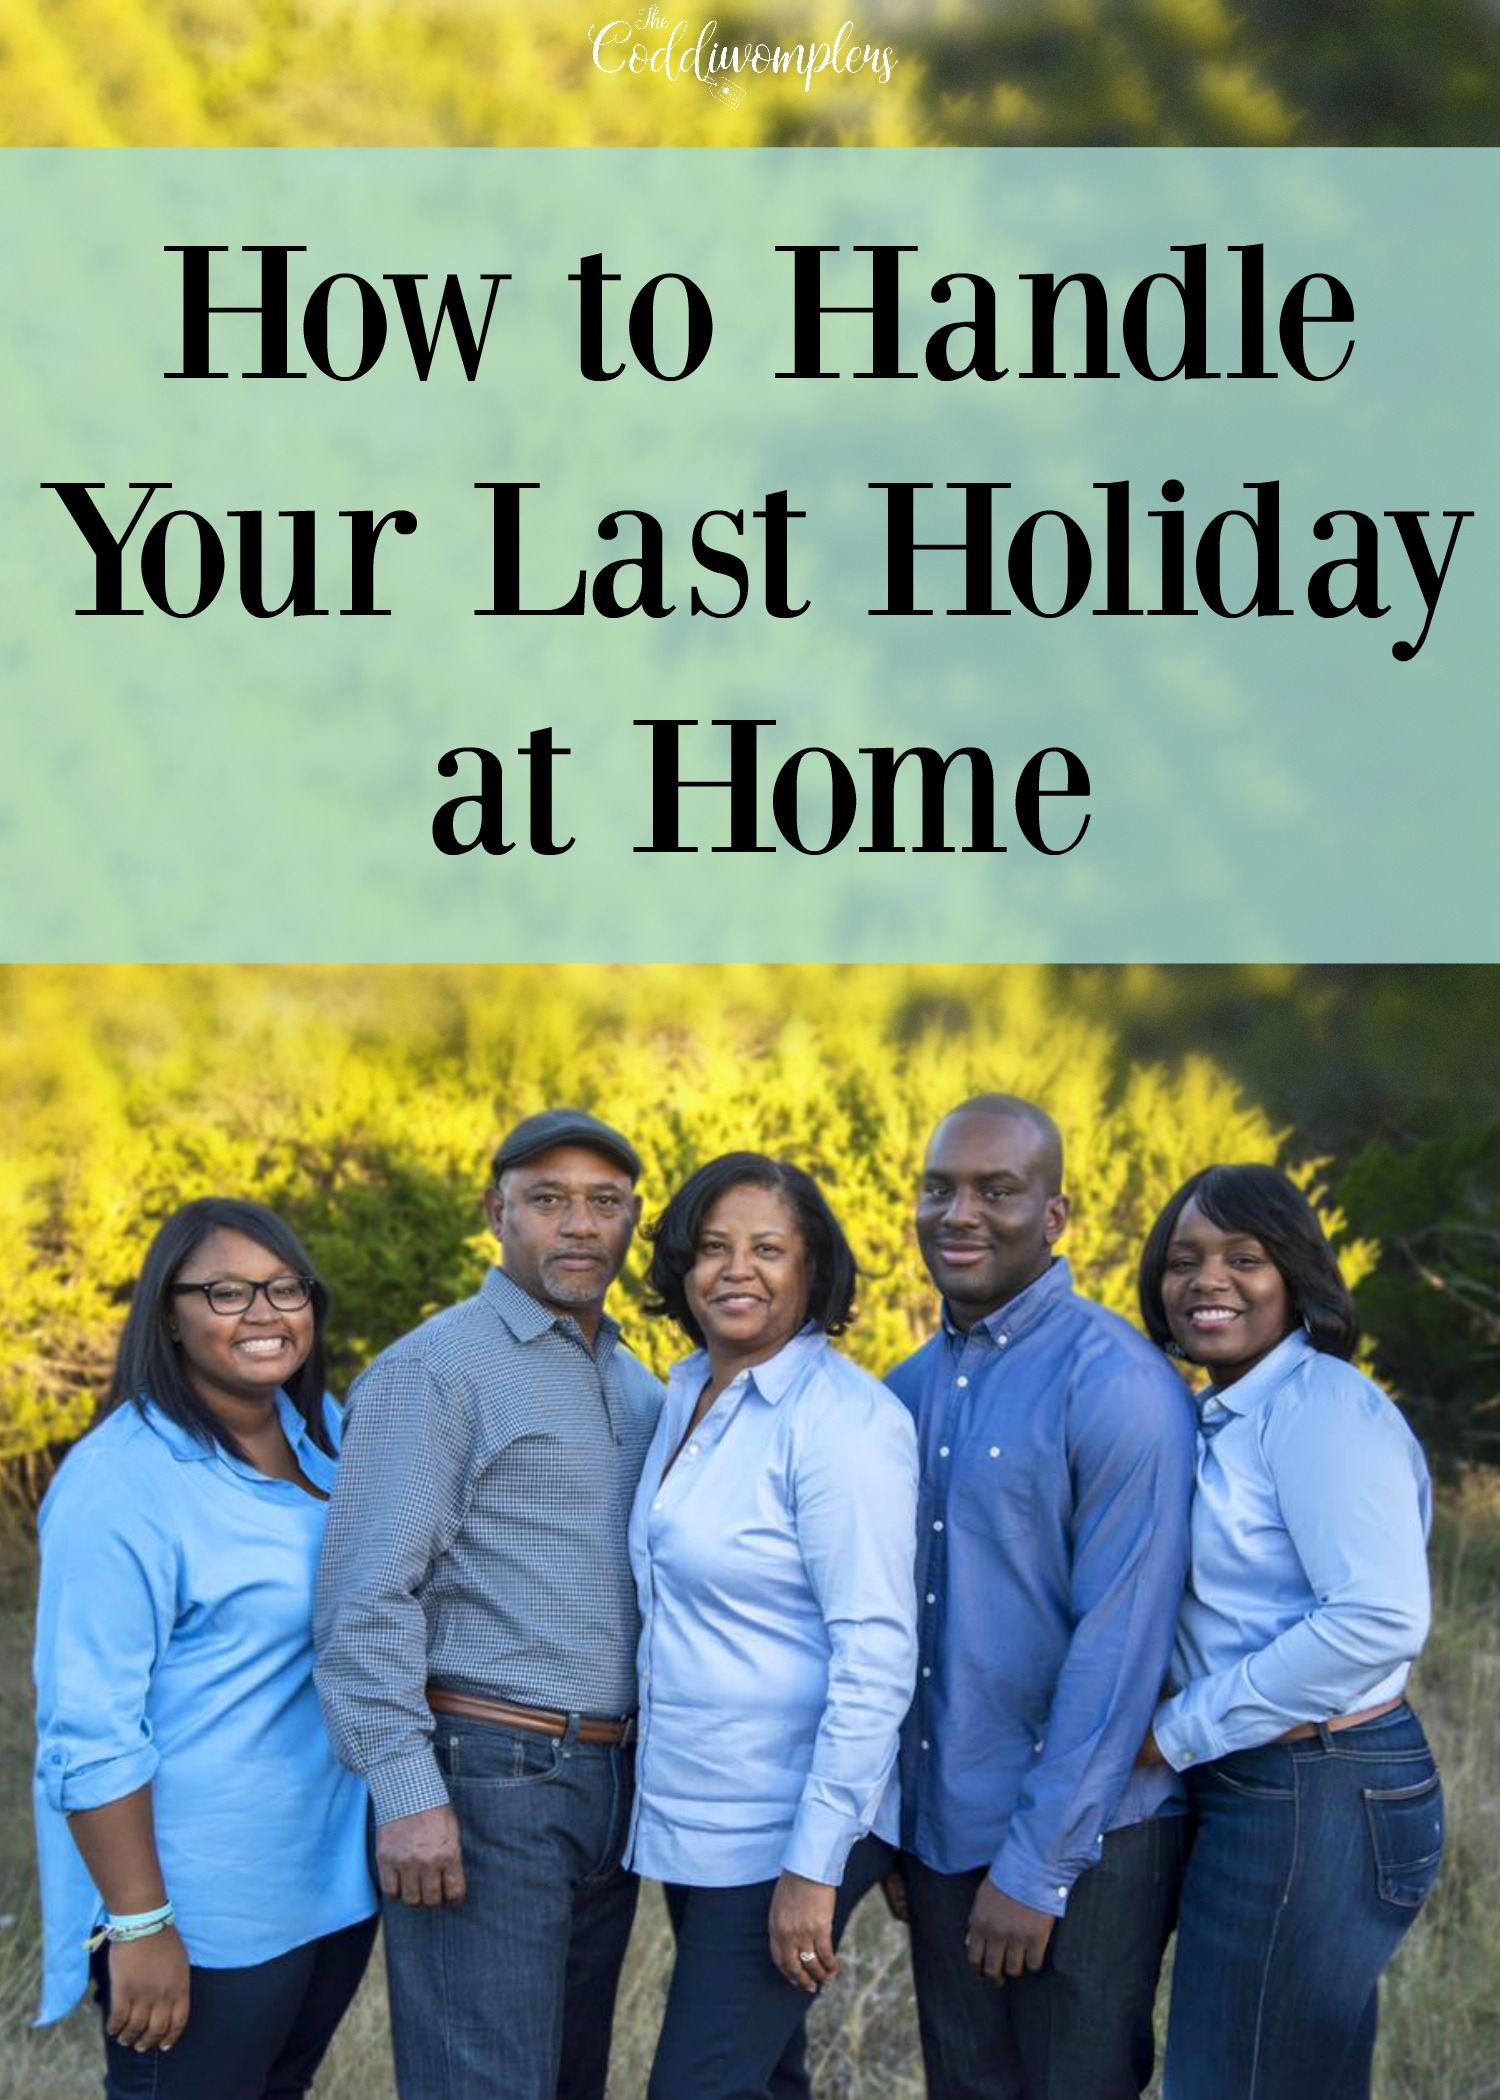 If this was your last holiday at home, what would you do differently? Here are some things to consider on how to handle your last holiday at home.